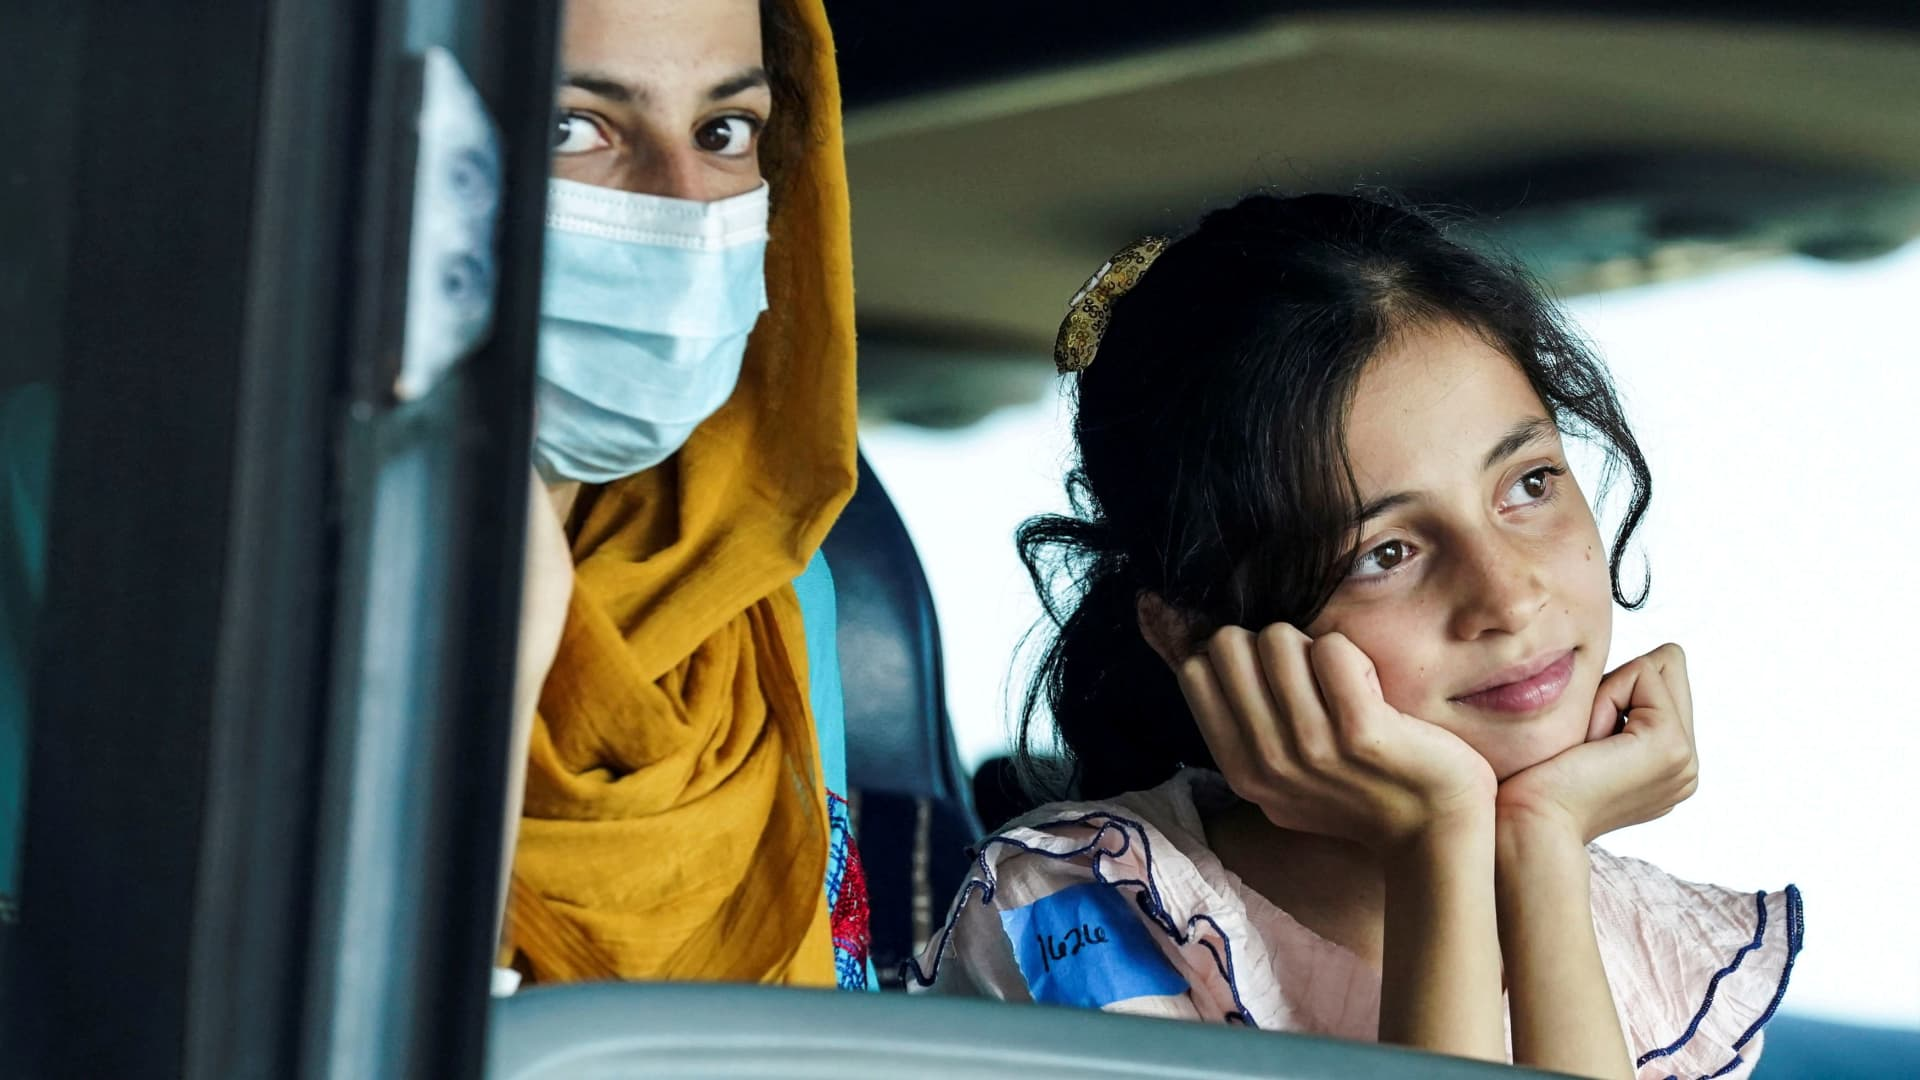 Afghan refugees ride a bus to a processing center at Dulles International Airport on Aug. 25, 2021.